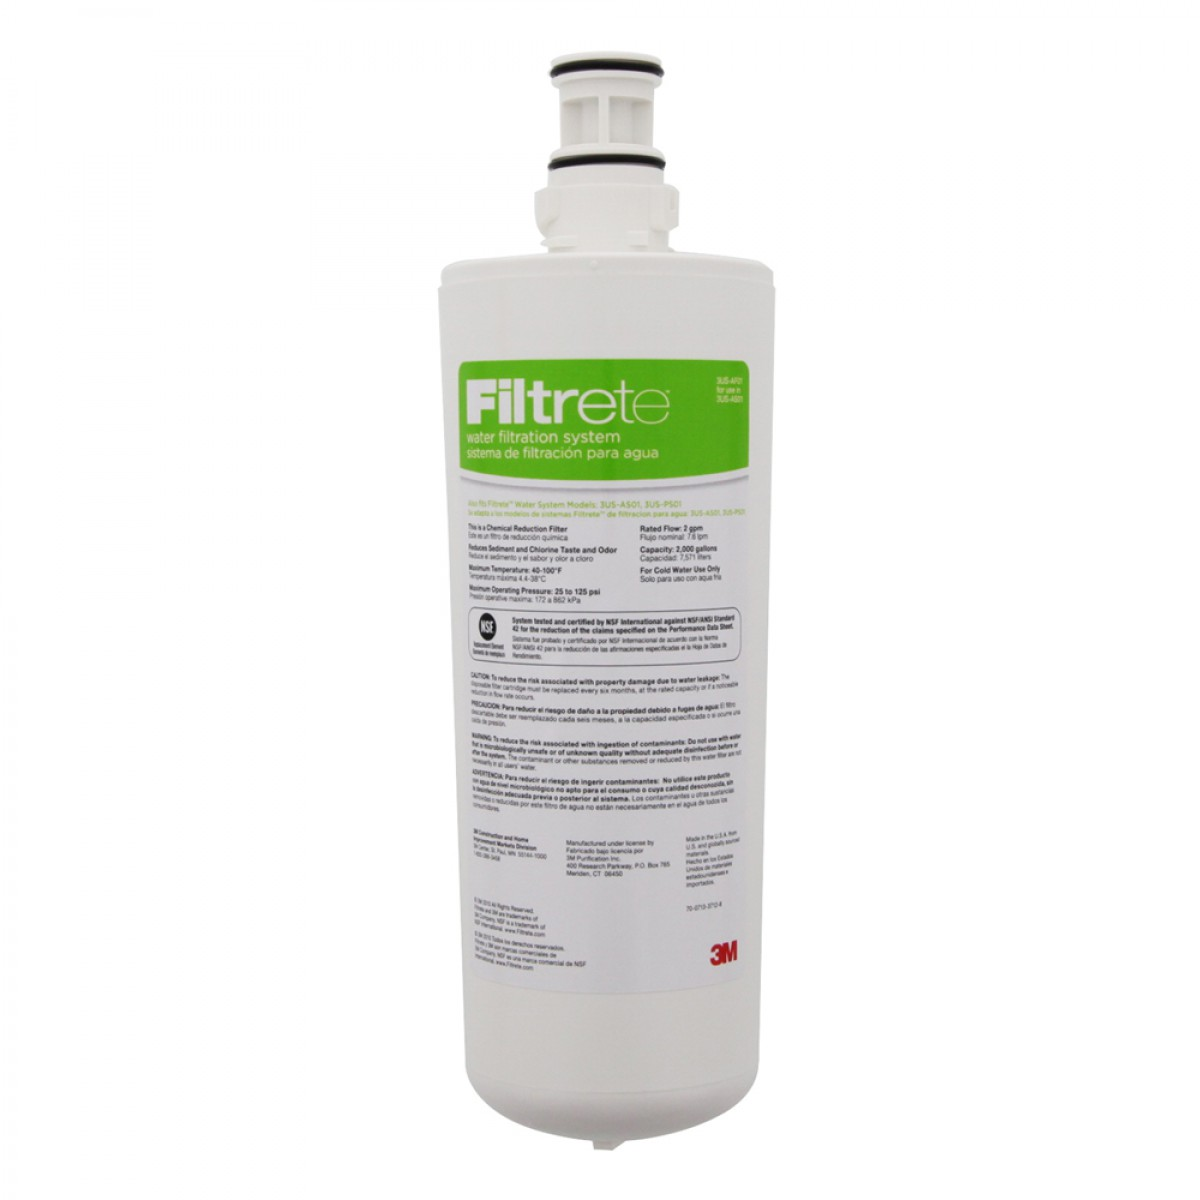 3m Filtrete 3us Af01 Replacement Water Filter For 3us As01